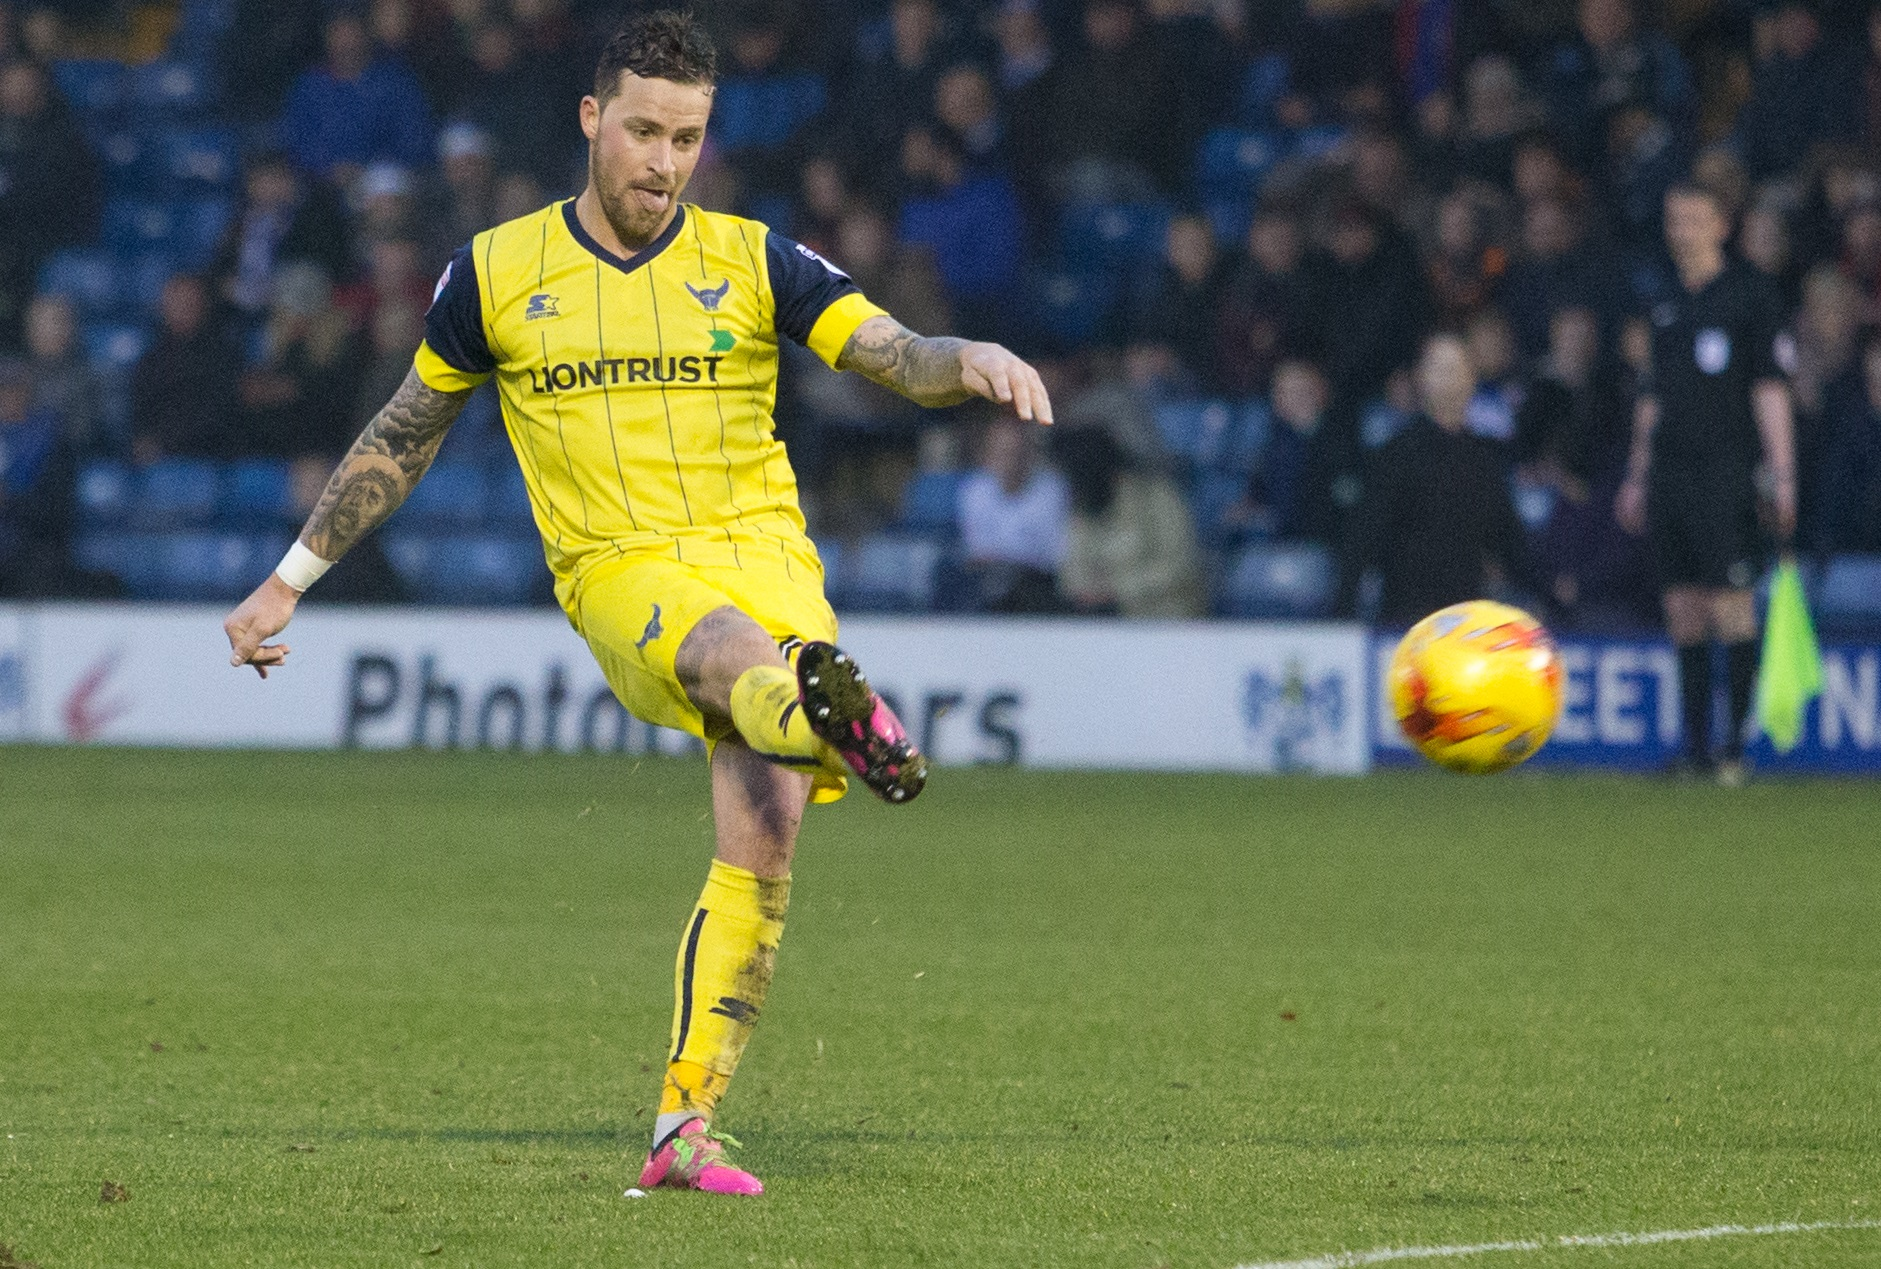 Chris Maguire scores his second free-kick in Oxford United's 3-2 win at Bury last season. The forward will line up for the Shakers tonight looking for his first goal of the campaign Picture: James Williamson